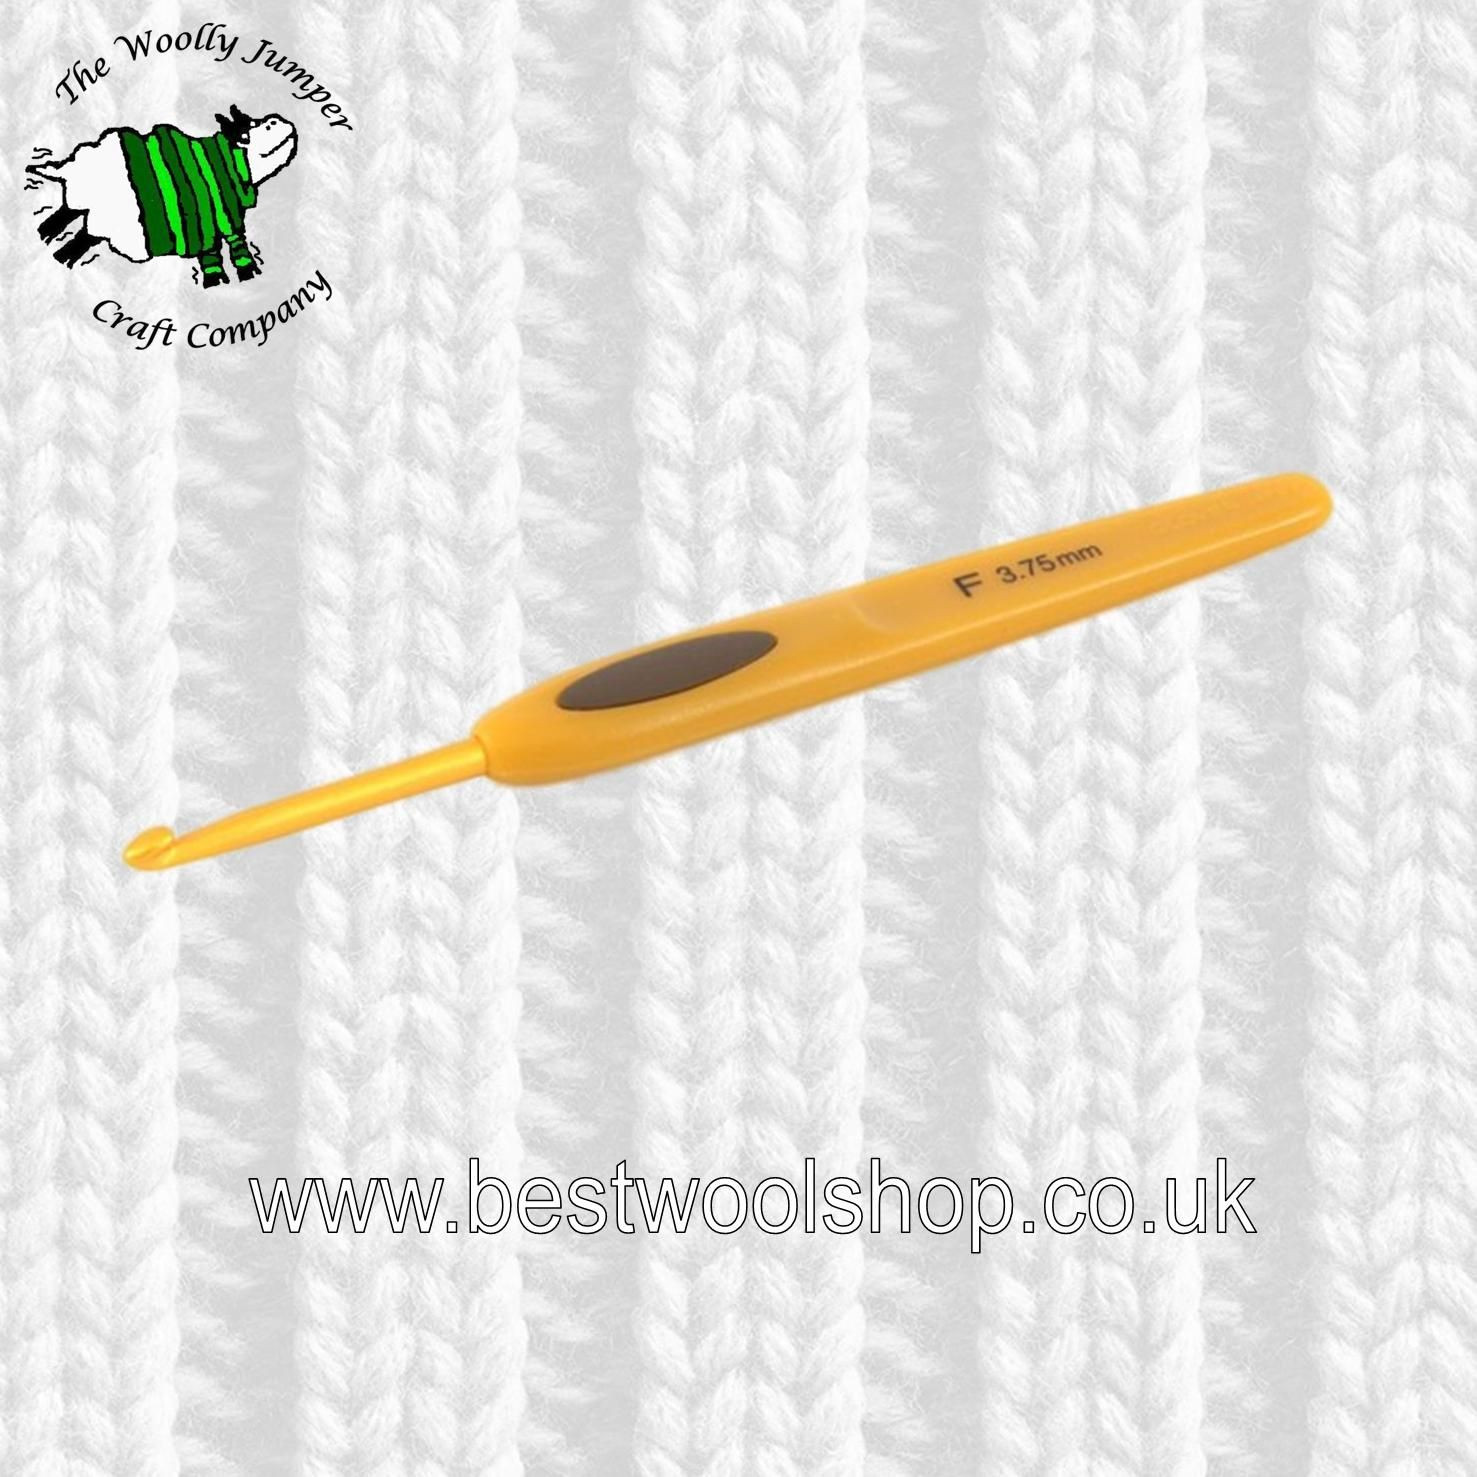 Elegant 3 75 Mm Clover soft touch Crochet Hook F Clover soft touch Crochet Hooks Of Elegant Clover soft touch Steel Crochet Hook 13cm Clover soft touch Crochet Hooks